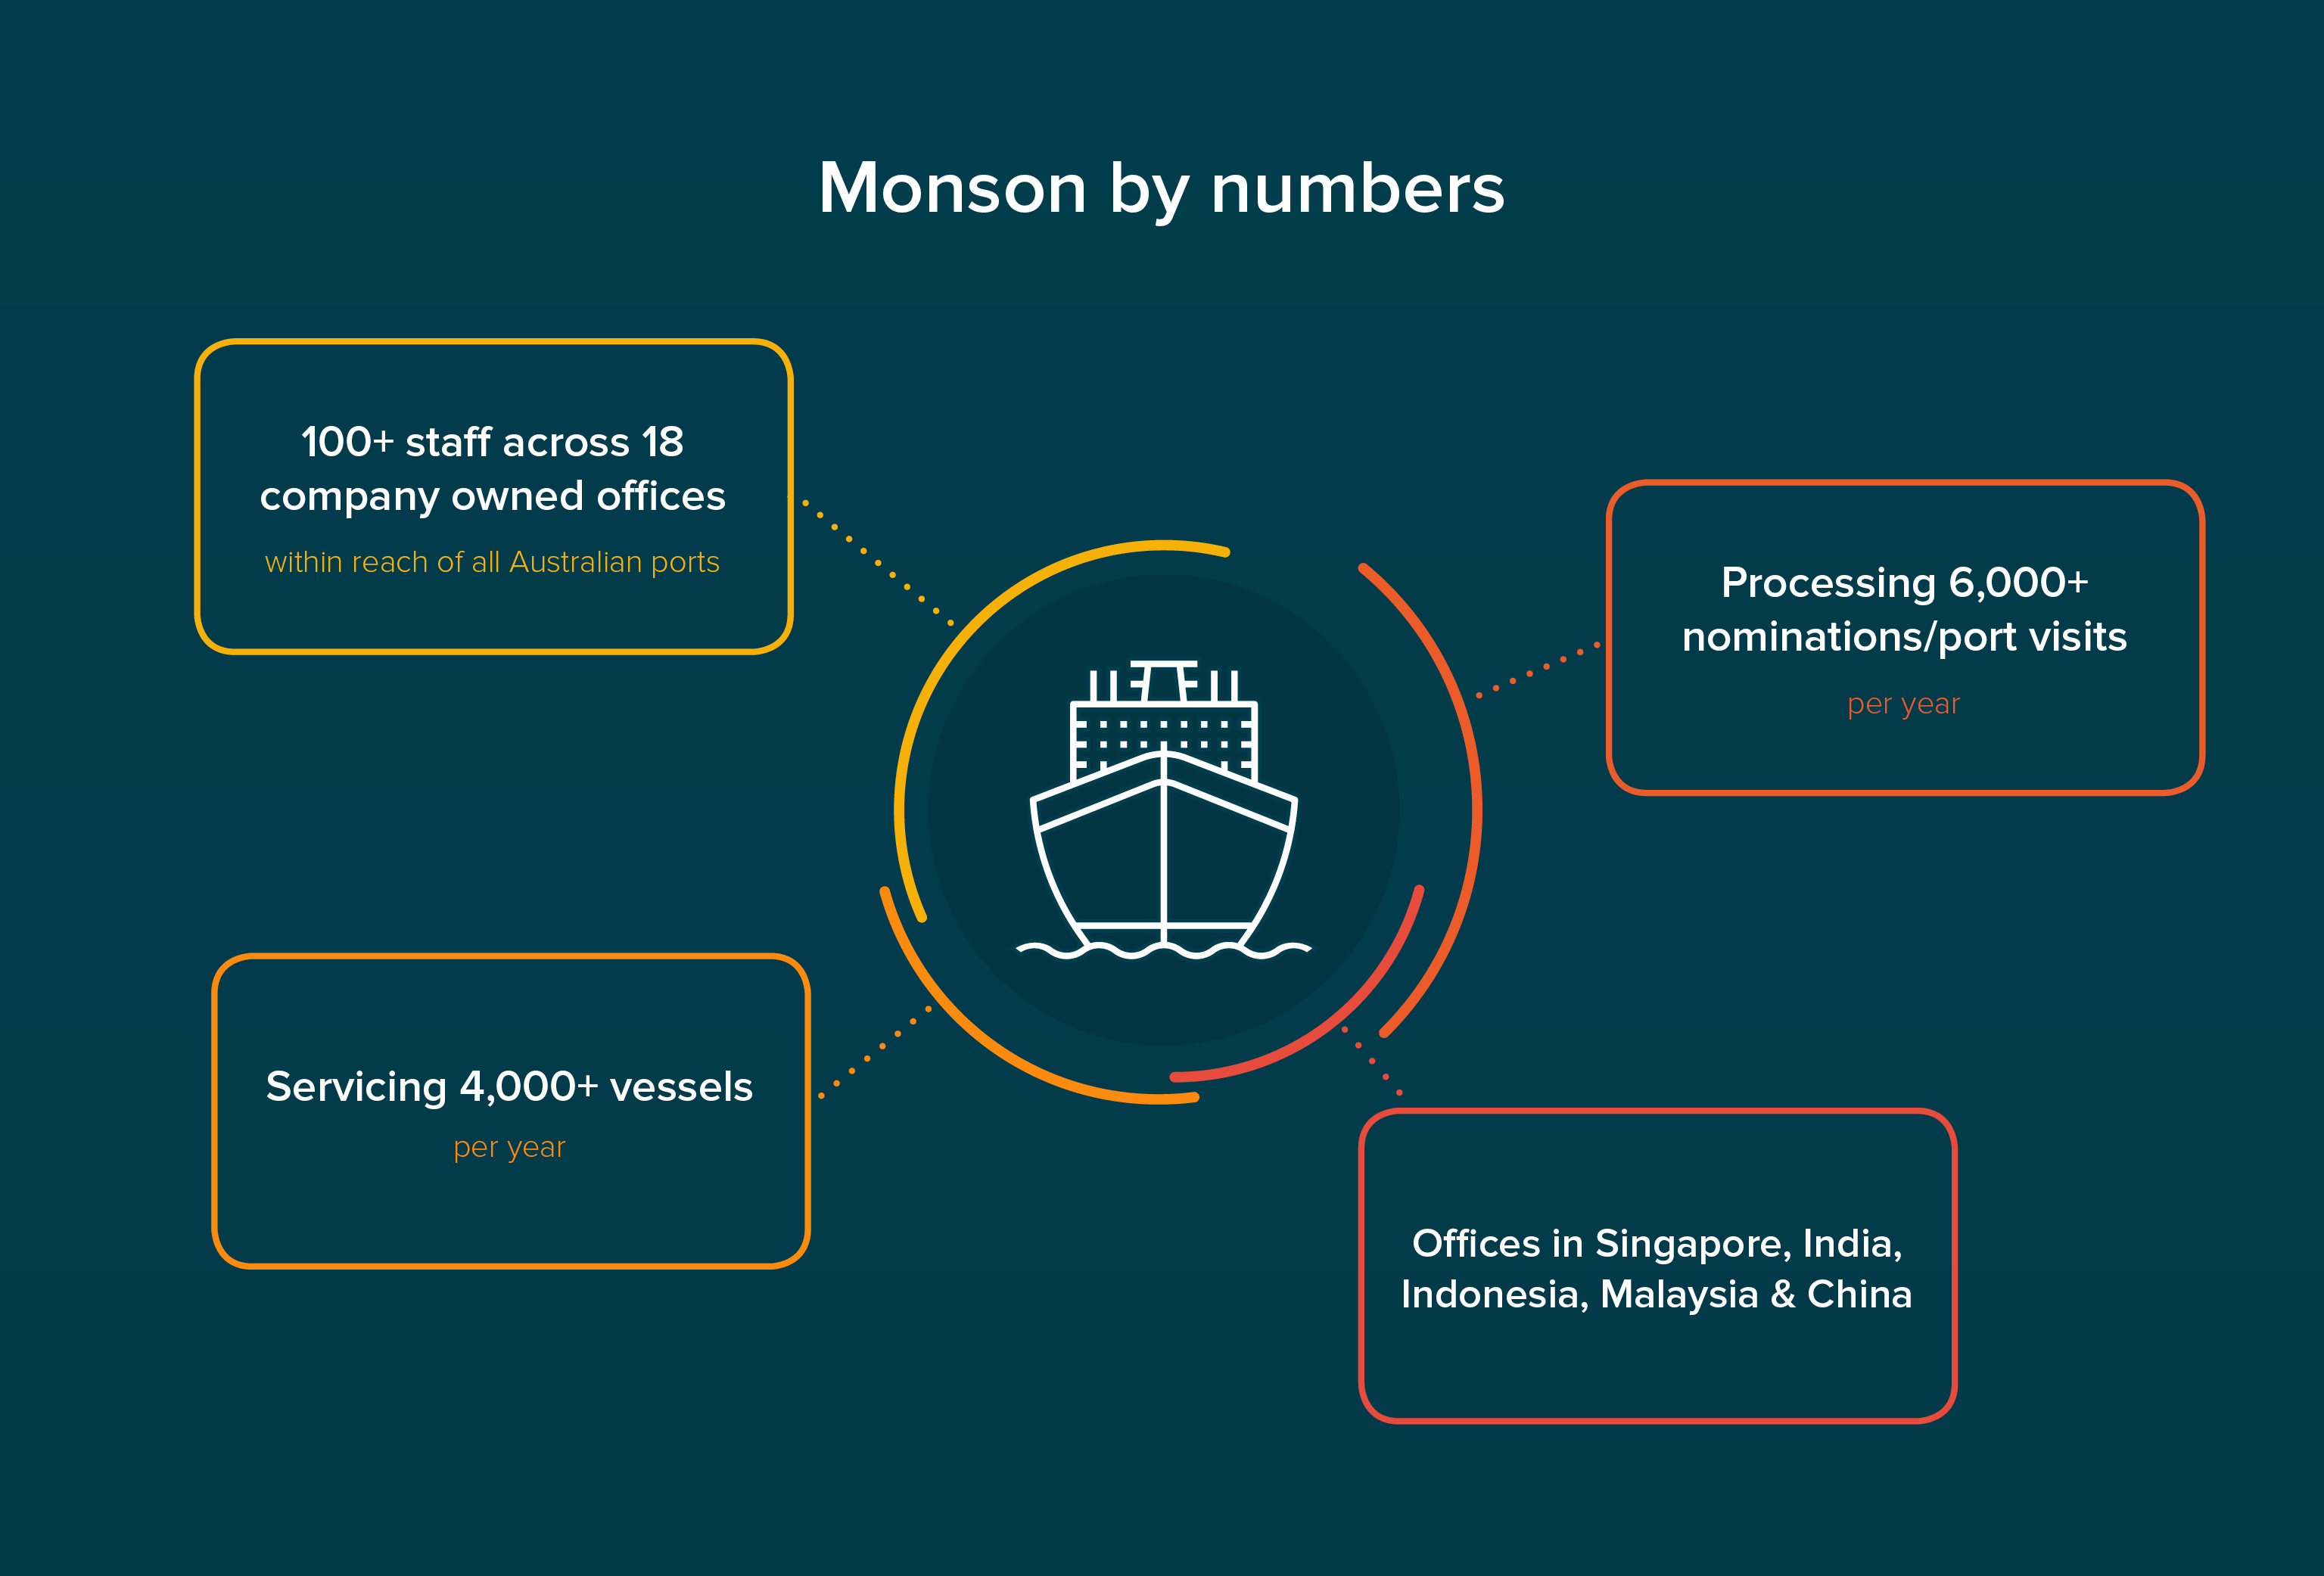 Monson by numbers